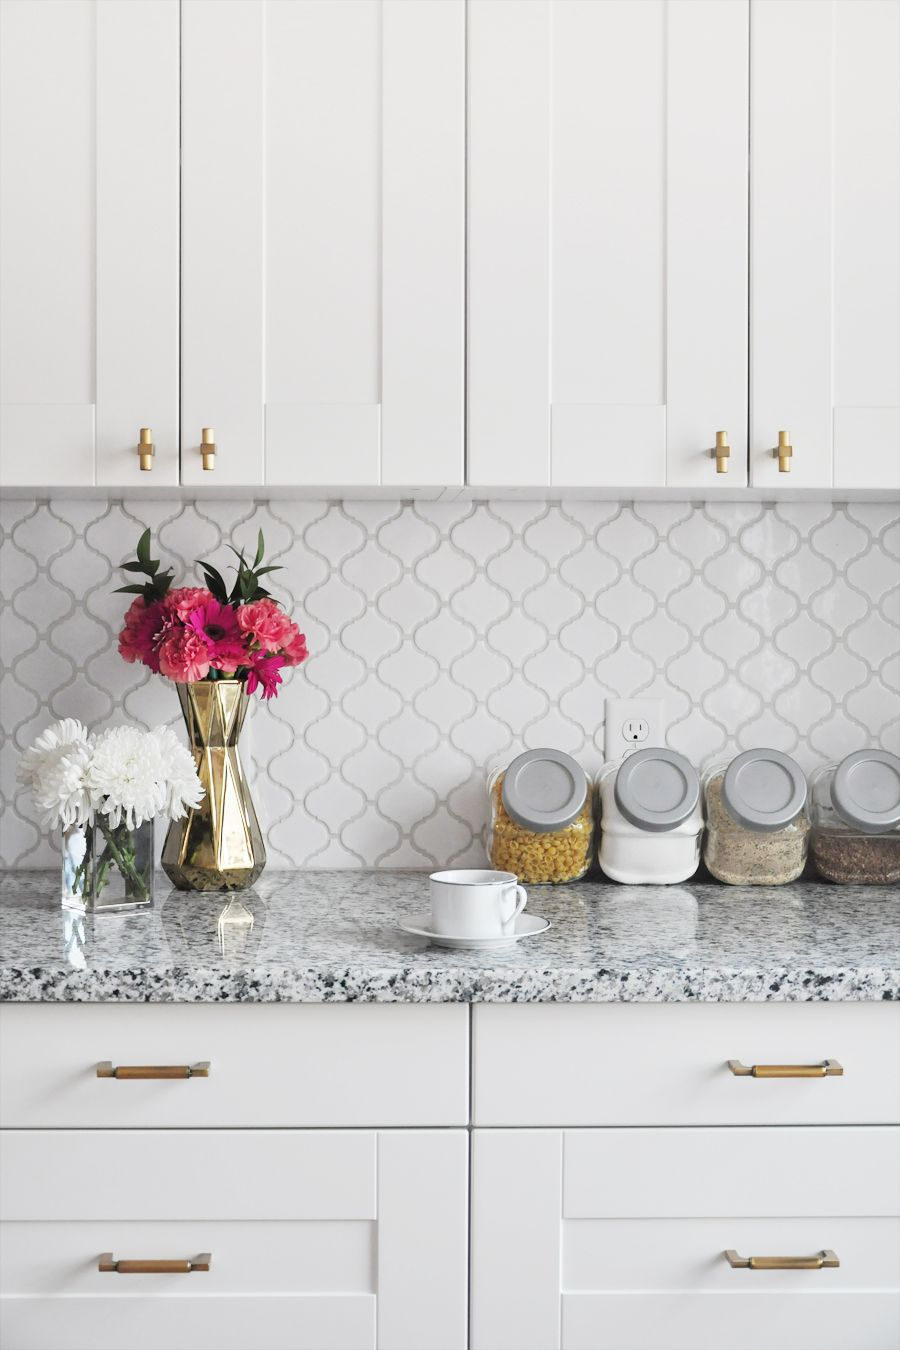 How To Tile A Kitchen Backsplash Diy Tutorial White Kitchen